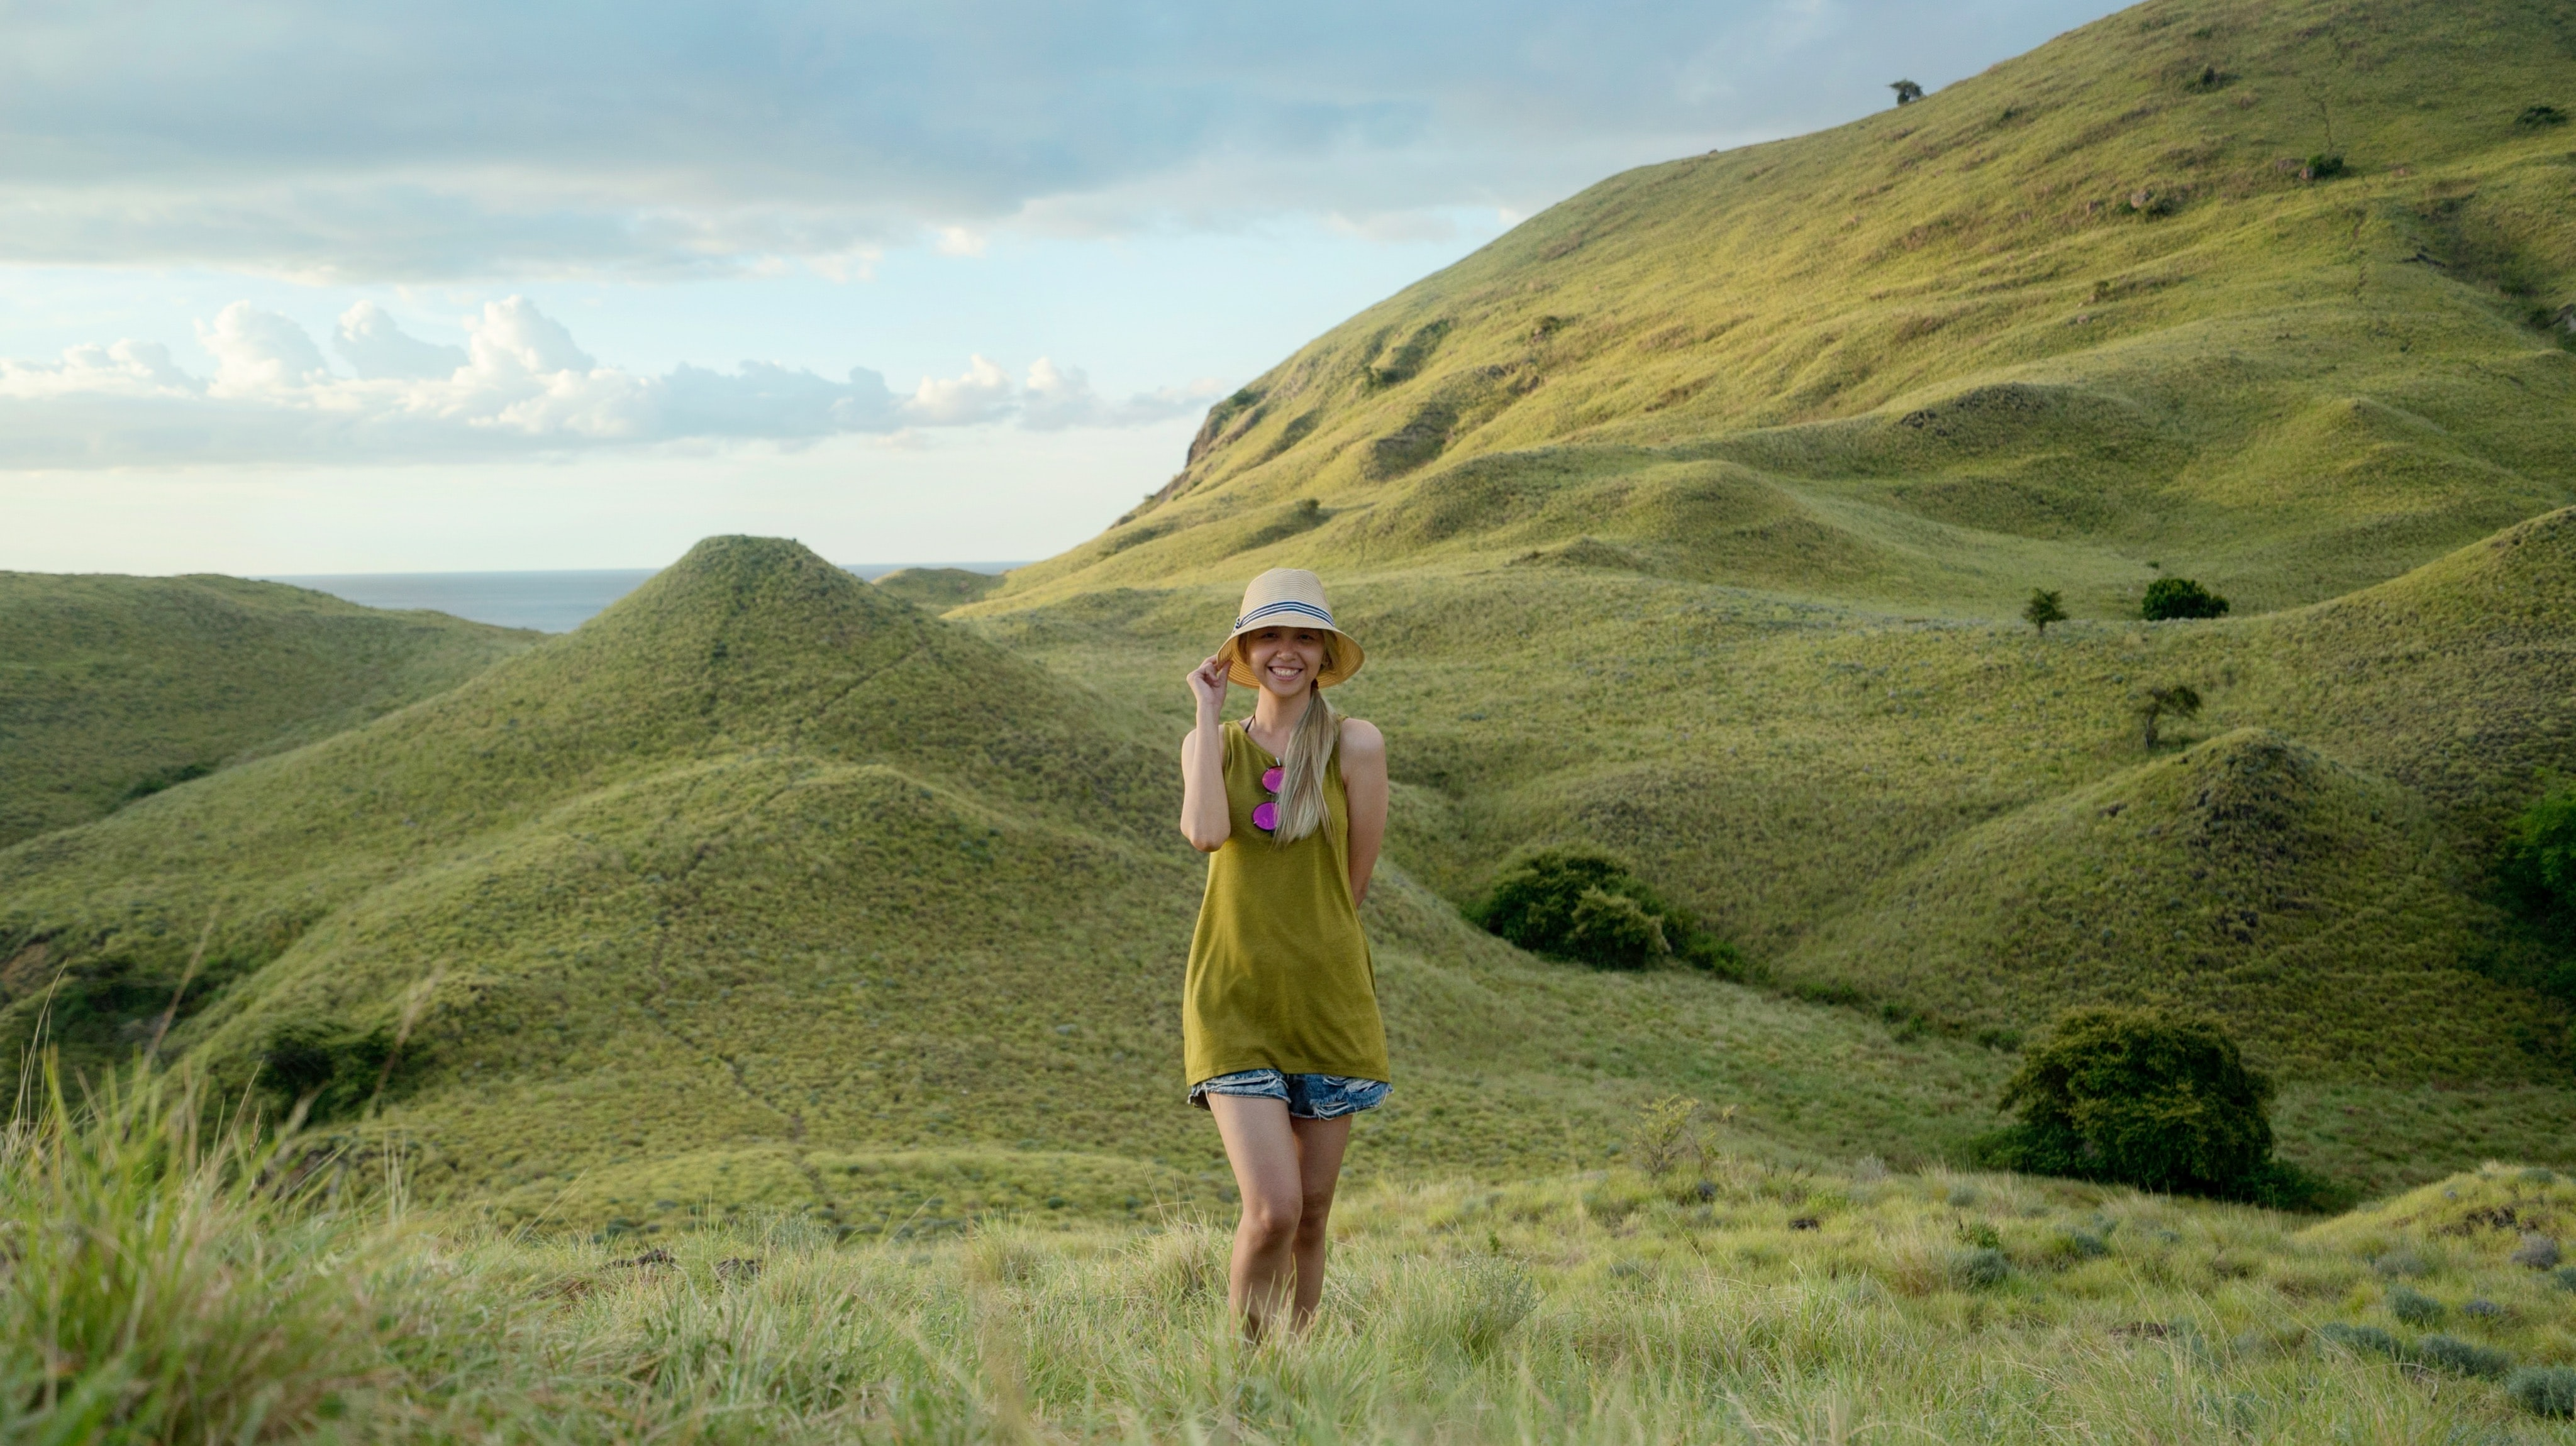 woman in green sleeveless top standing on mountain